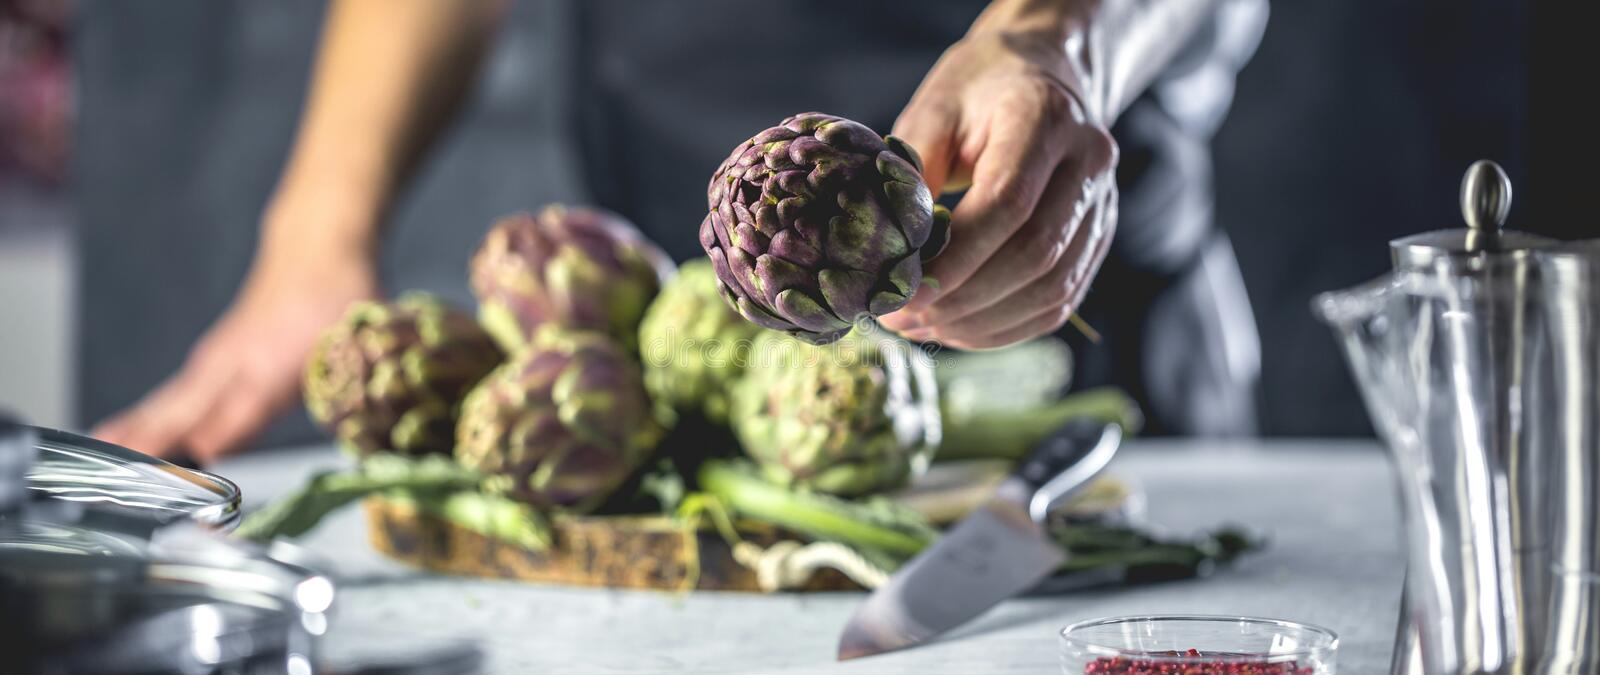 Chef cutting artichokes for dinner preparation - Man cooking inside restaurant kitchen royalty free stock images